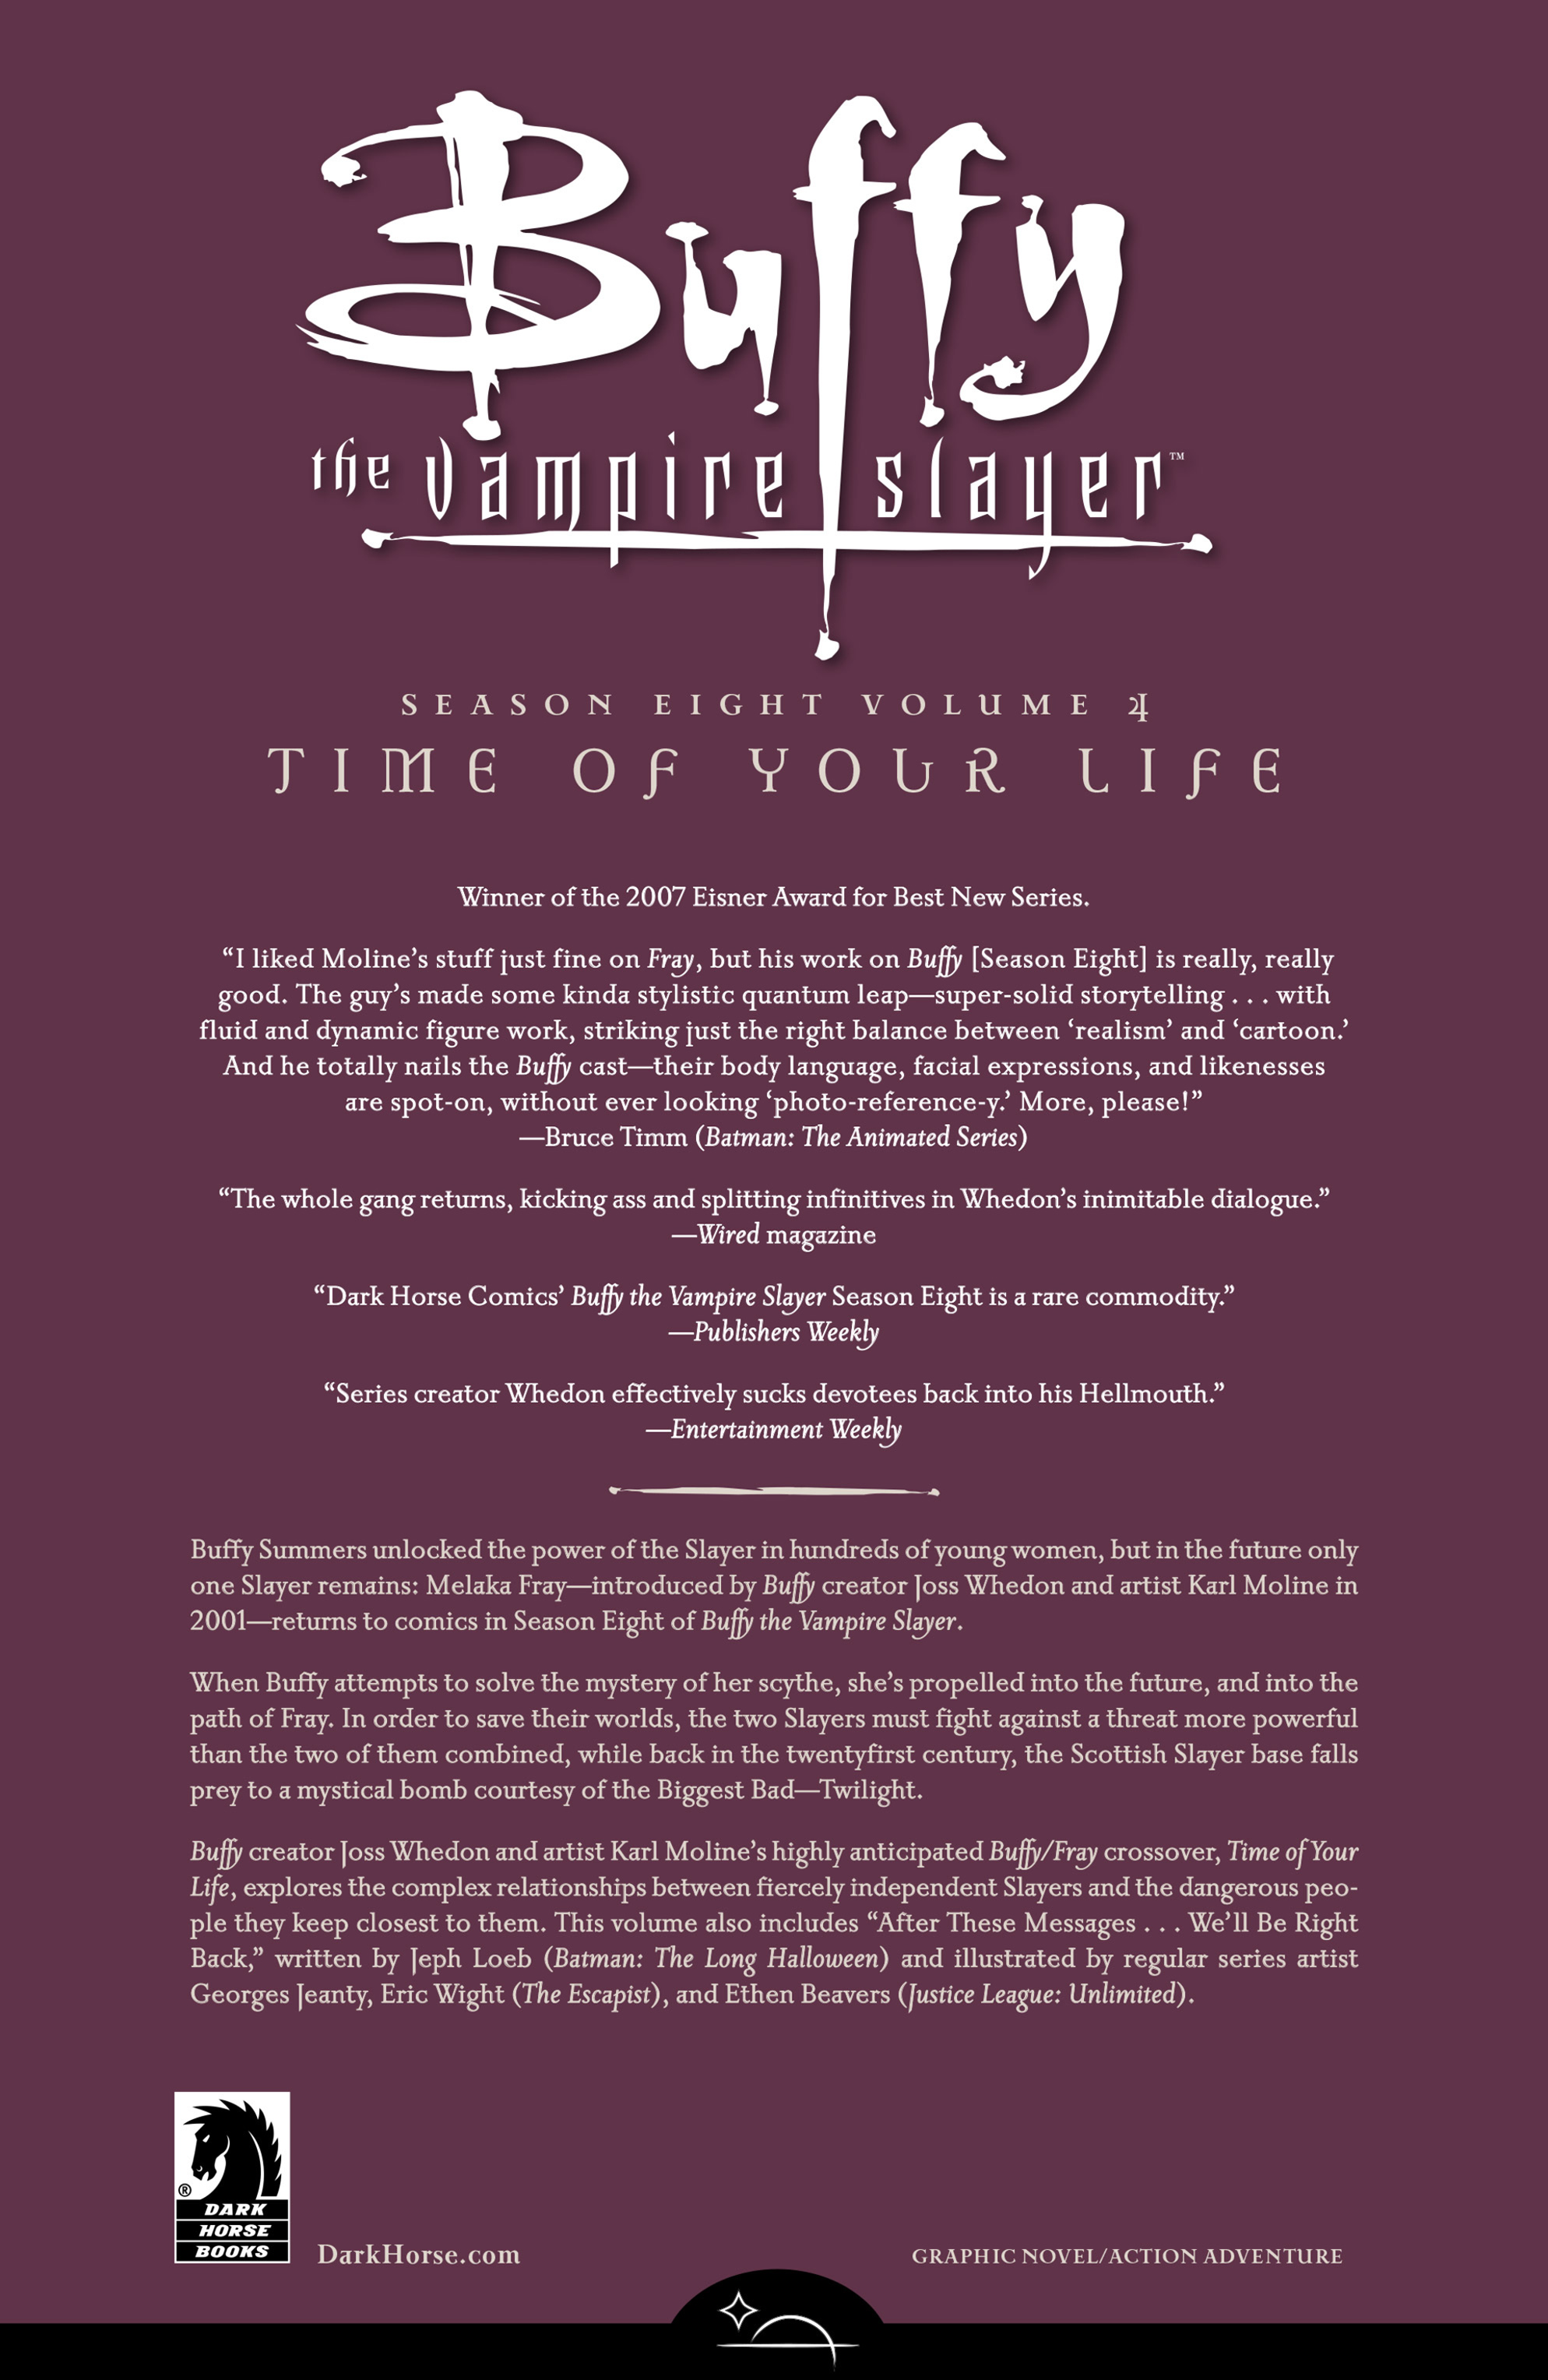 Buffy the Vampire Slayer Season Eight _TPB_4_-_Time_Of_Your_Life Page 133